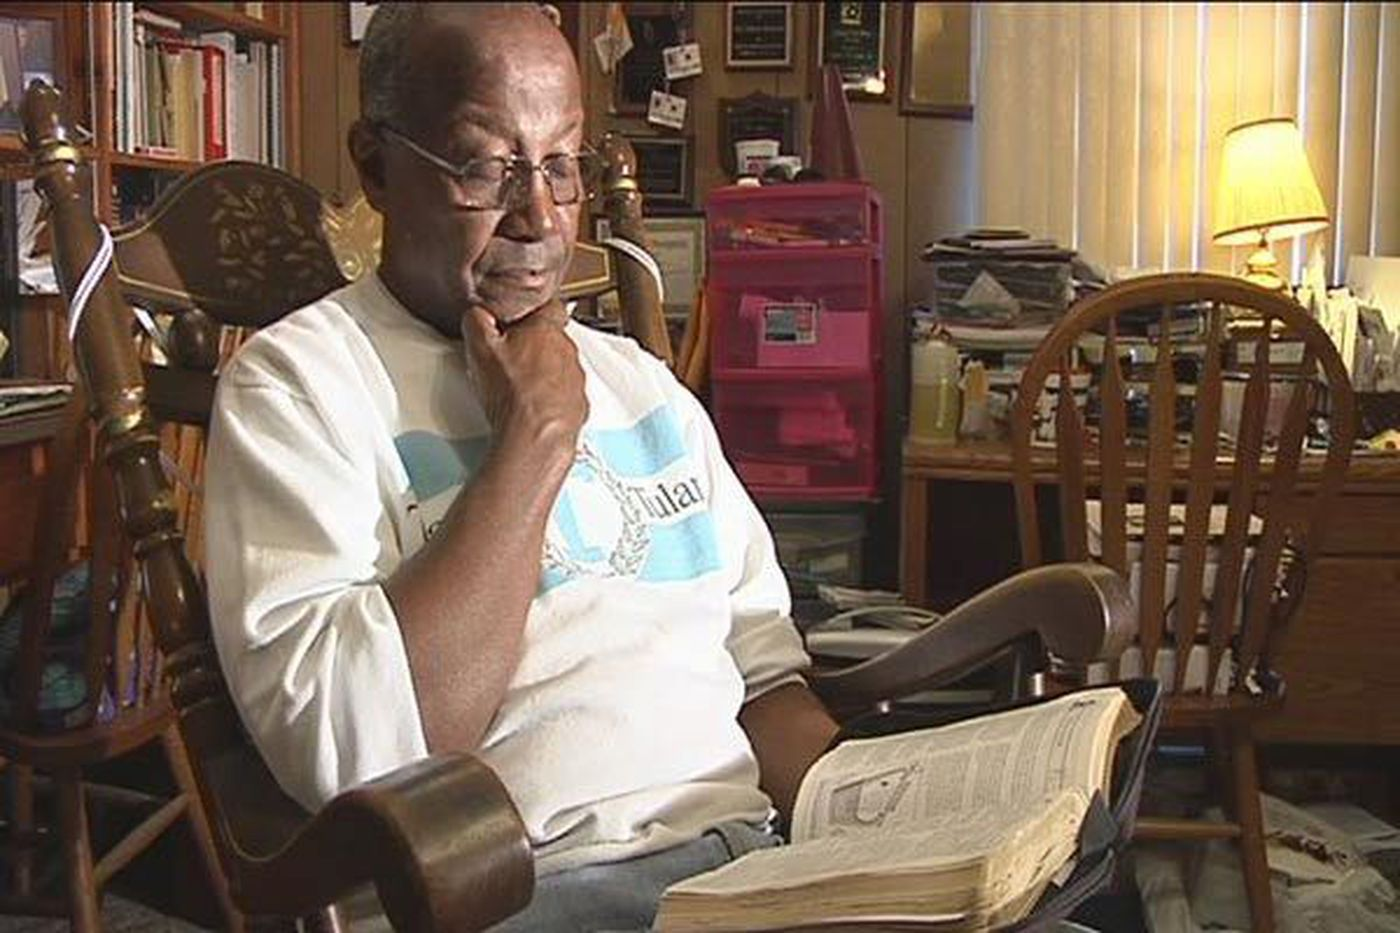 Deacon Nathan Williams, Jr. says he's been with the church for 70 years and this is the biggest scandal it's ever seen. (Source: WSFA 12 News)